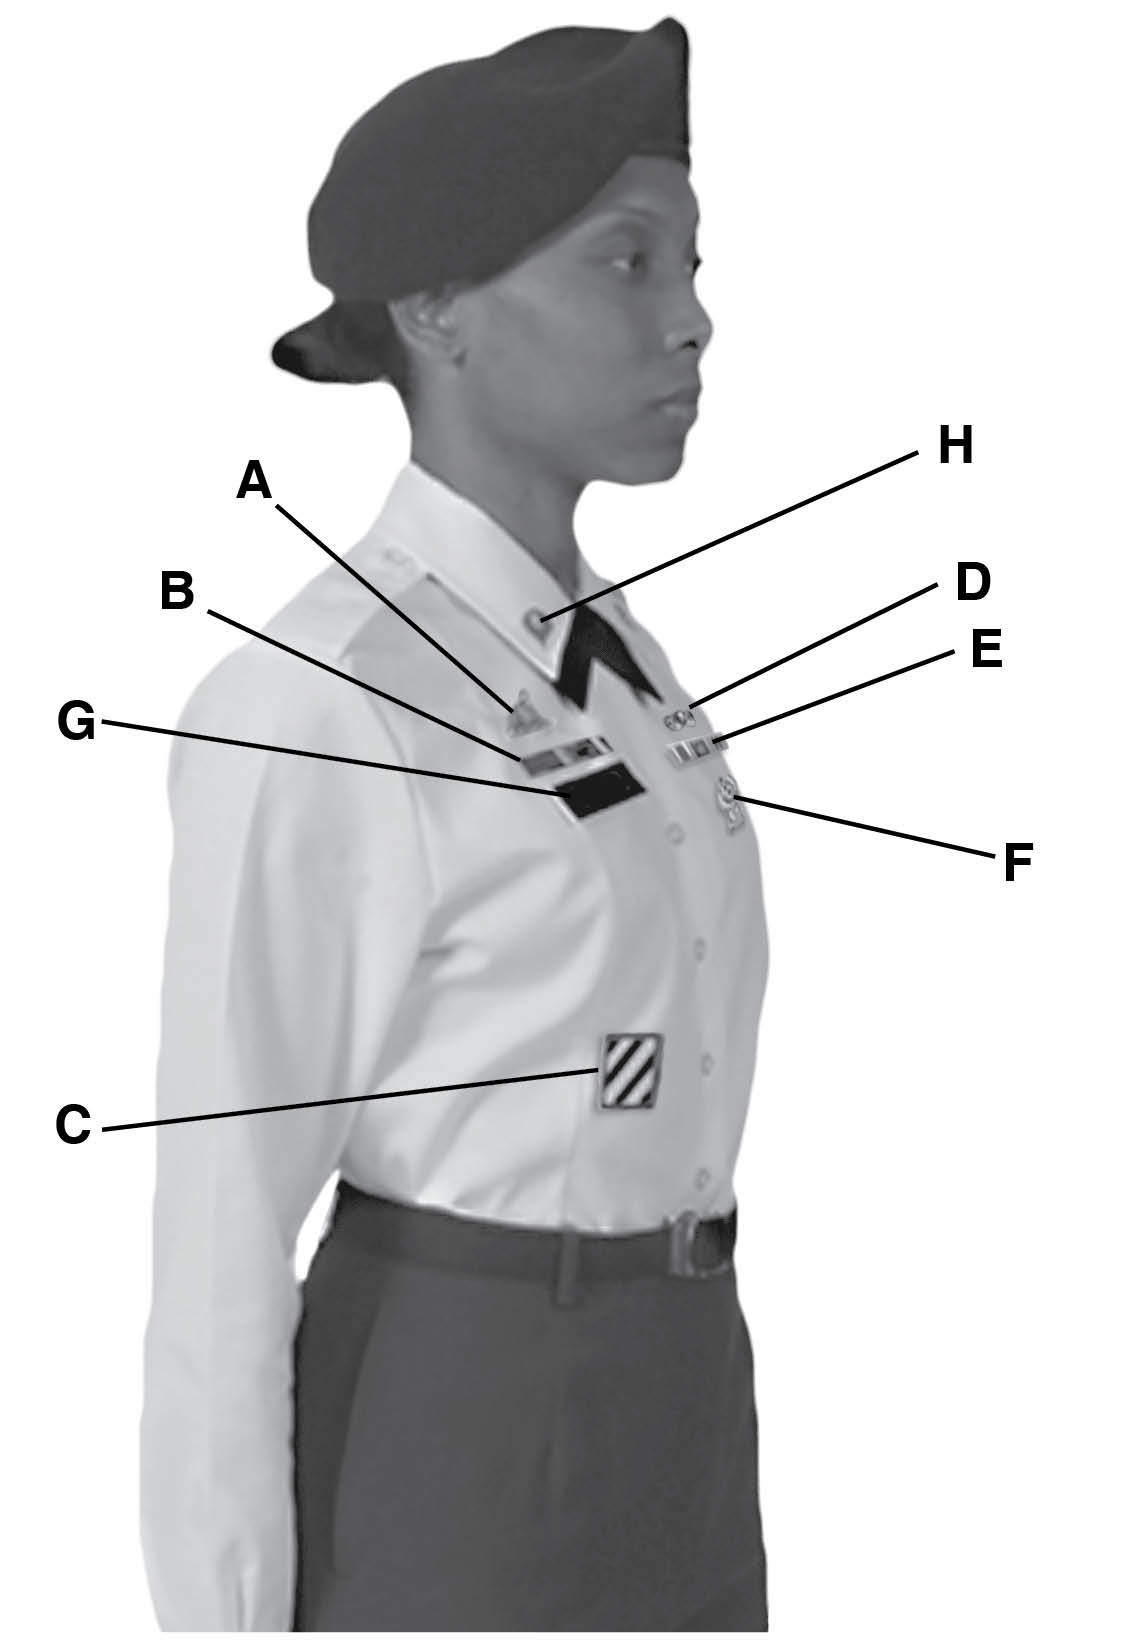 Female Class B Uniform 105